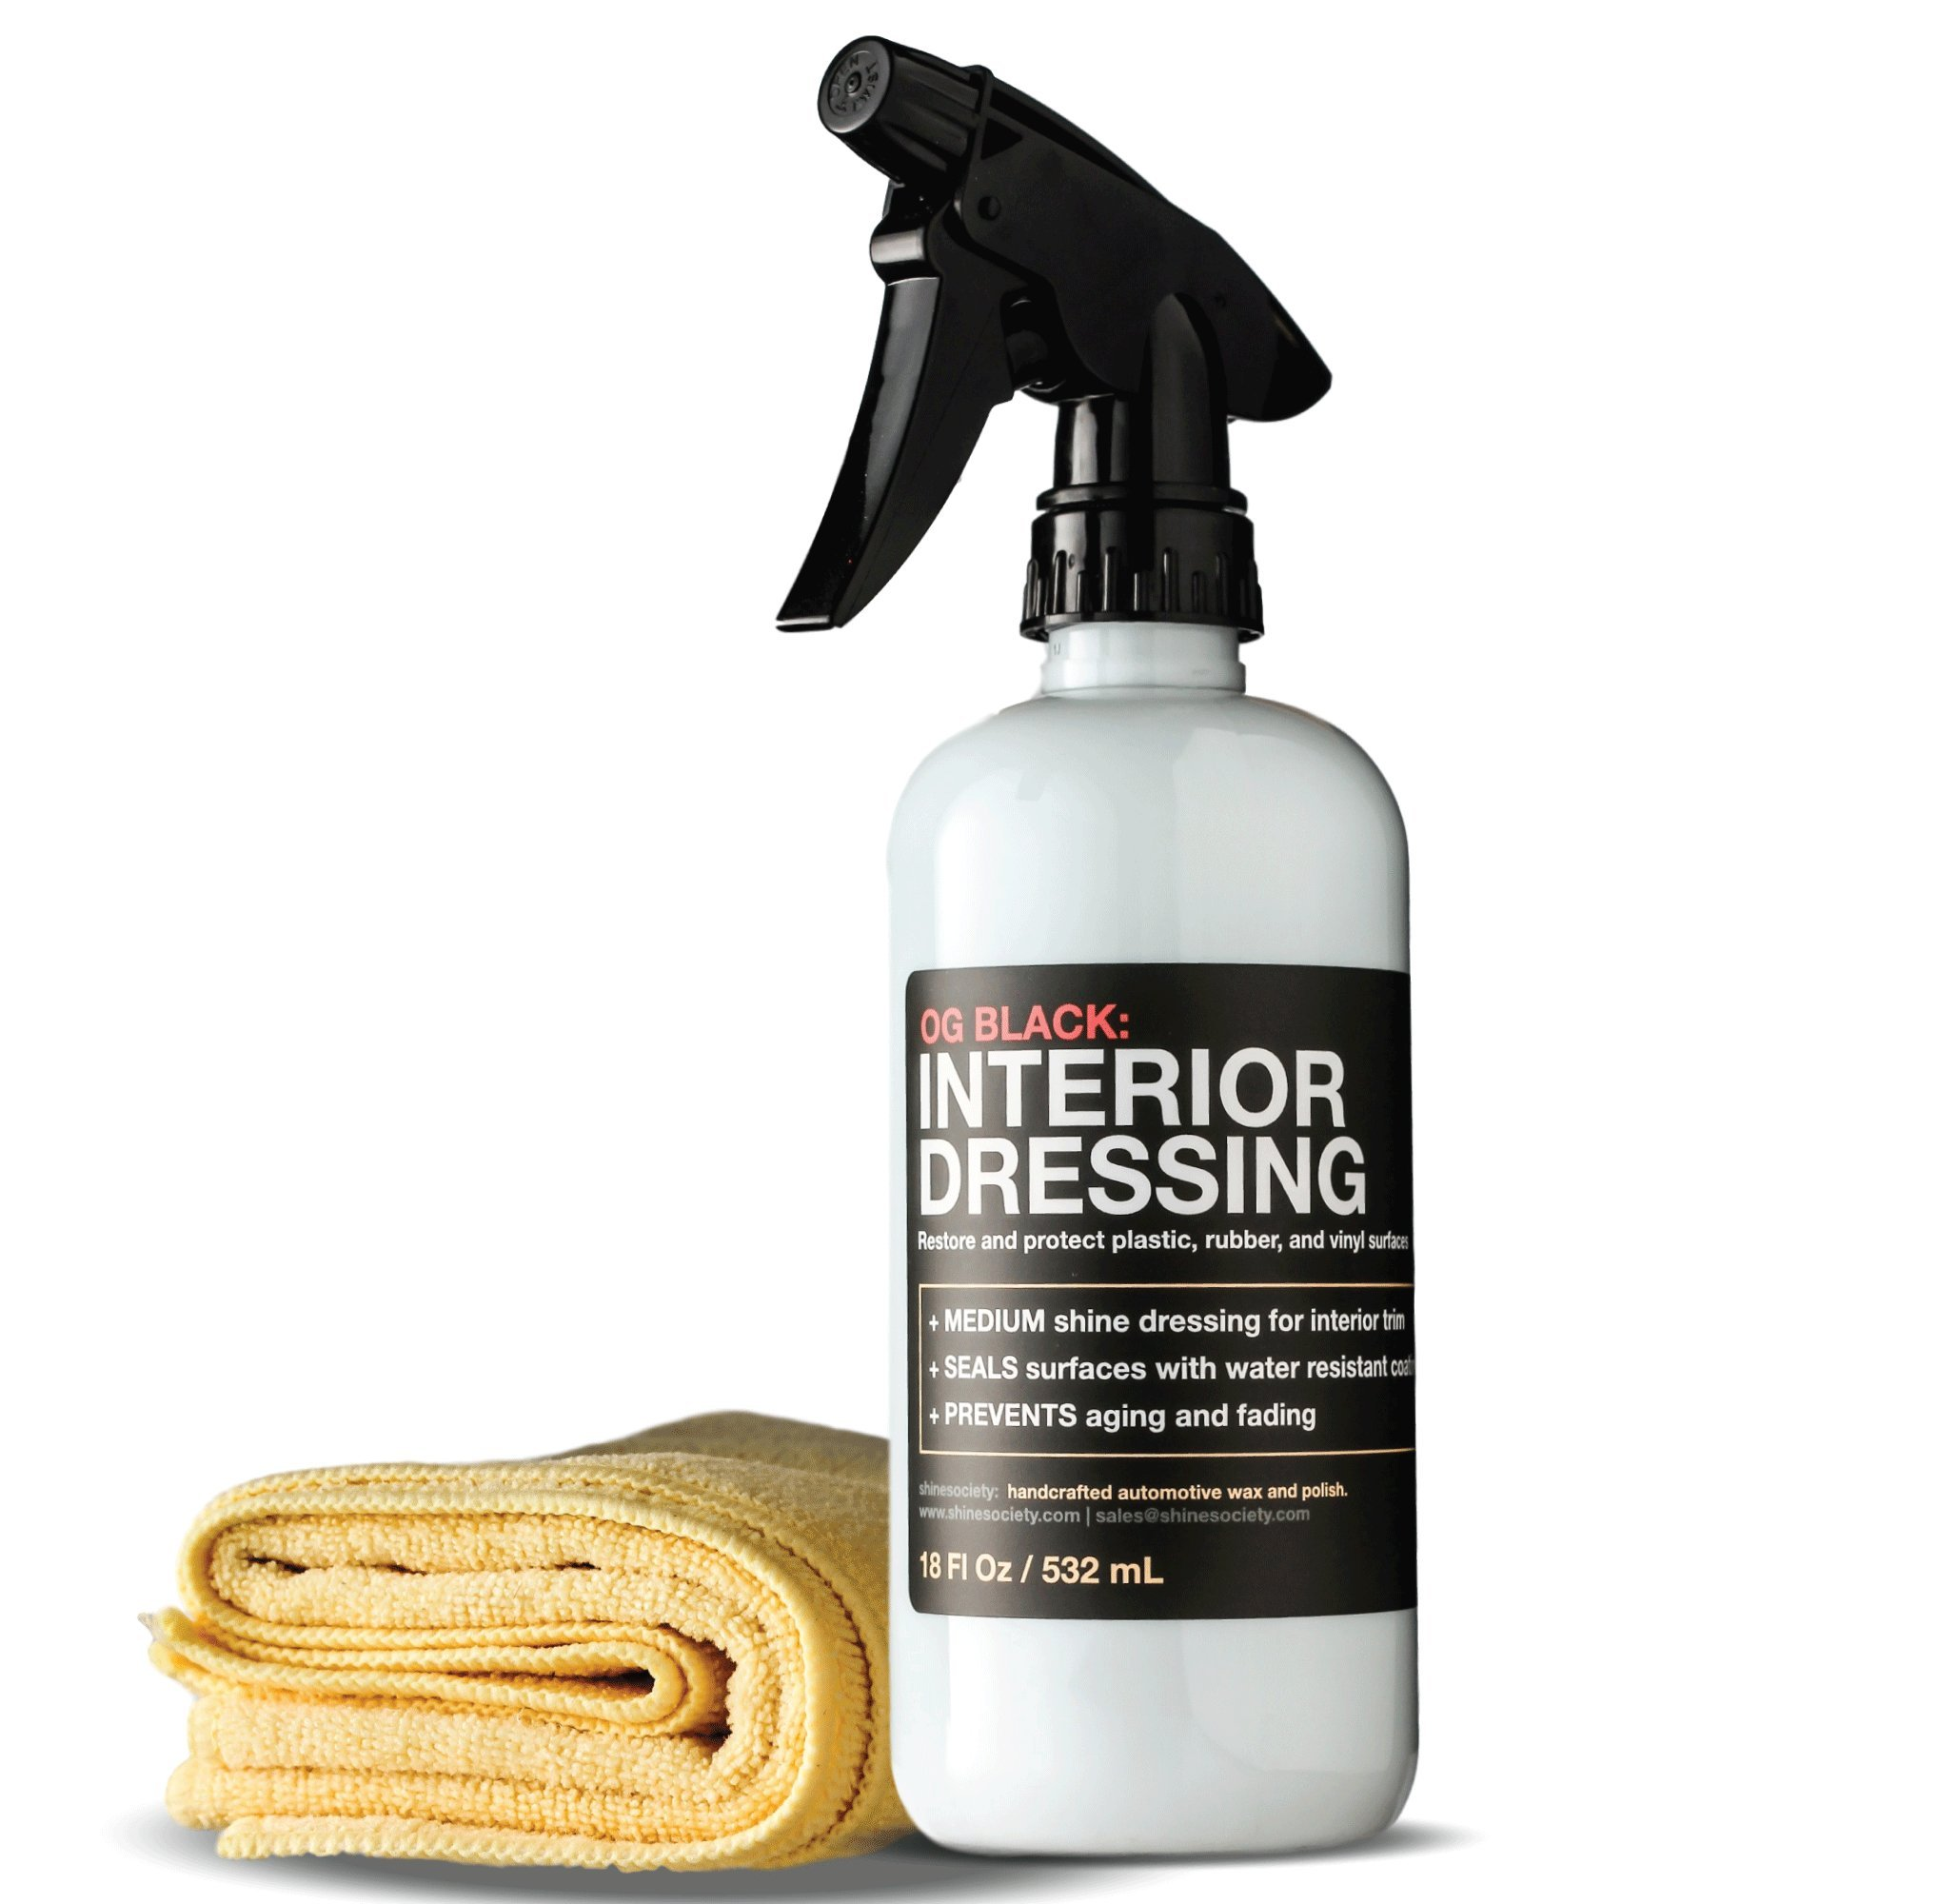 Shine Society Semi Gloss Protective Dressing for Vinyl, Plastic, Rubber, Leather and More, with MICROFIBER TOWEL INCLUDED (18 oz.)